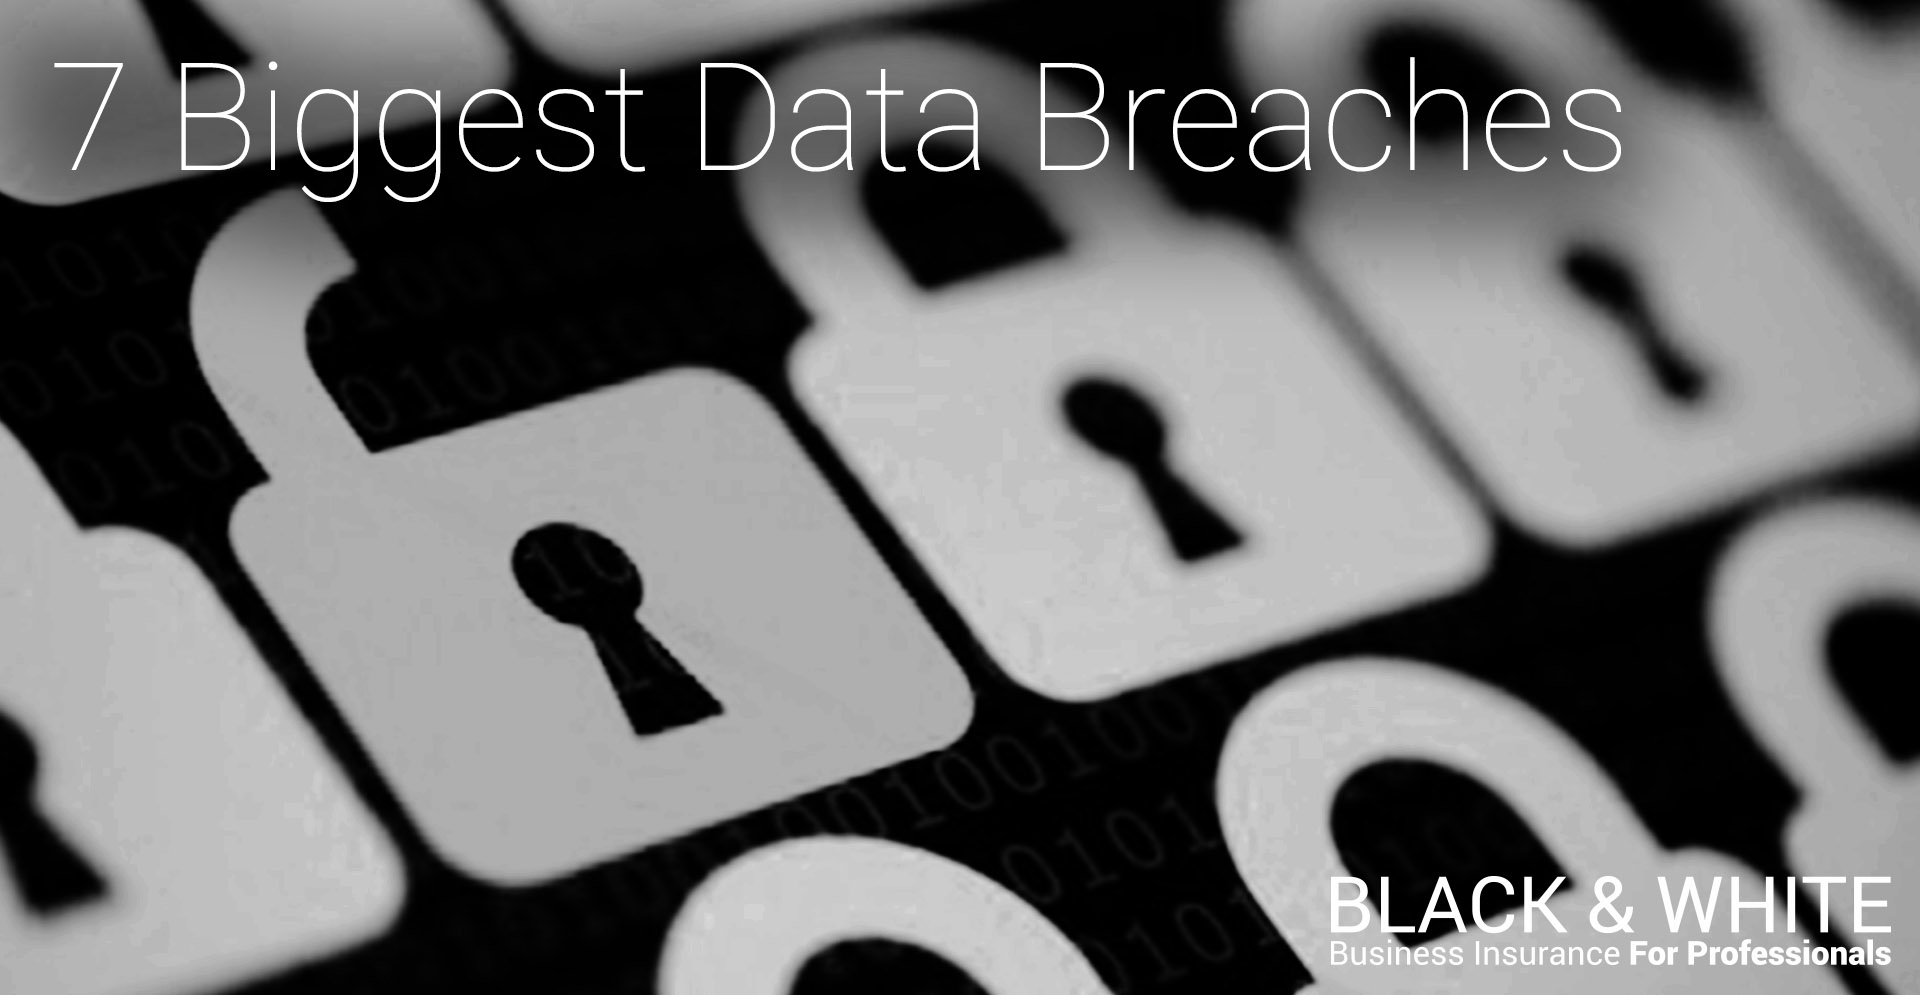 7 of the world's biggest data breaches | Black and White Insurance